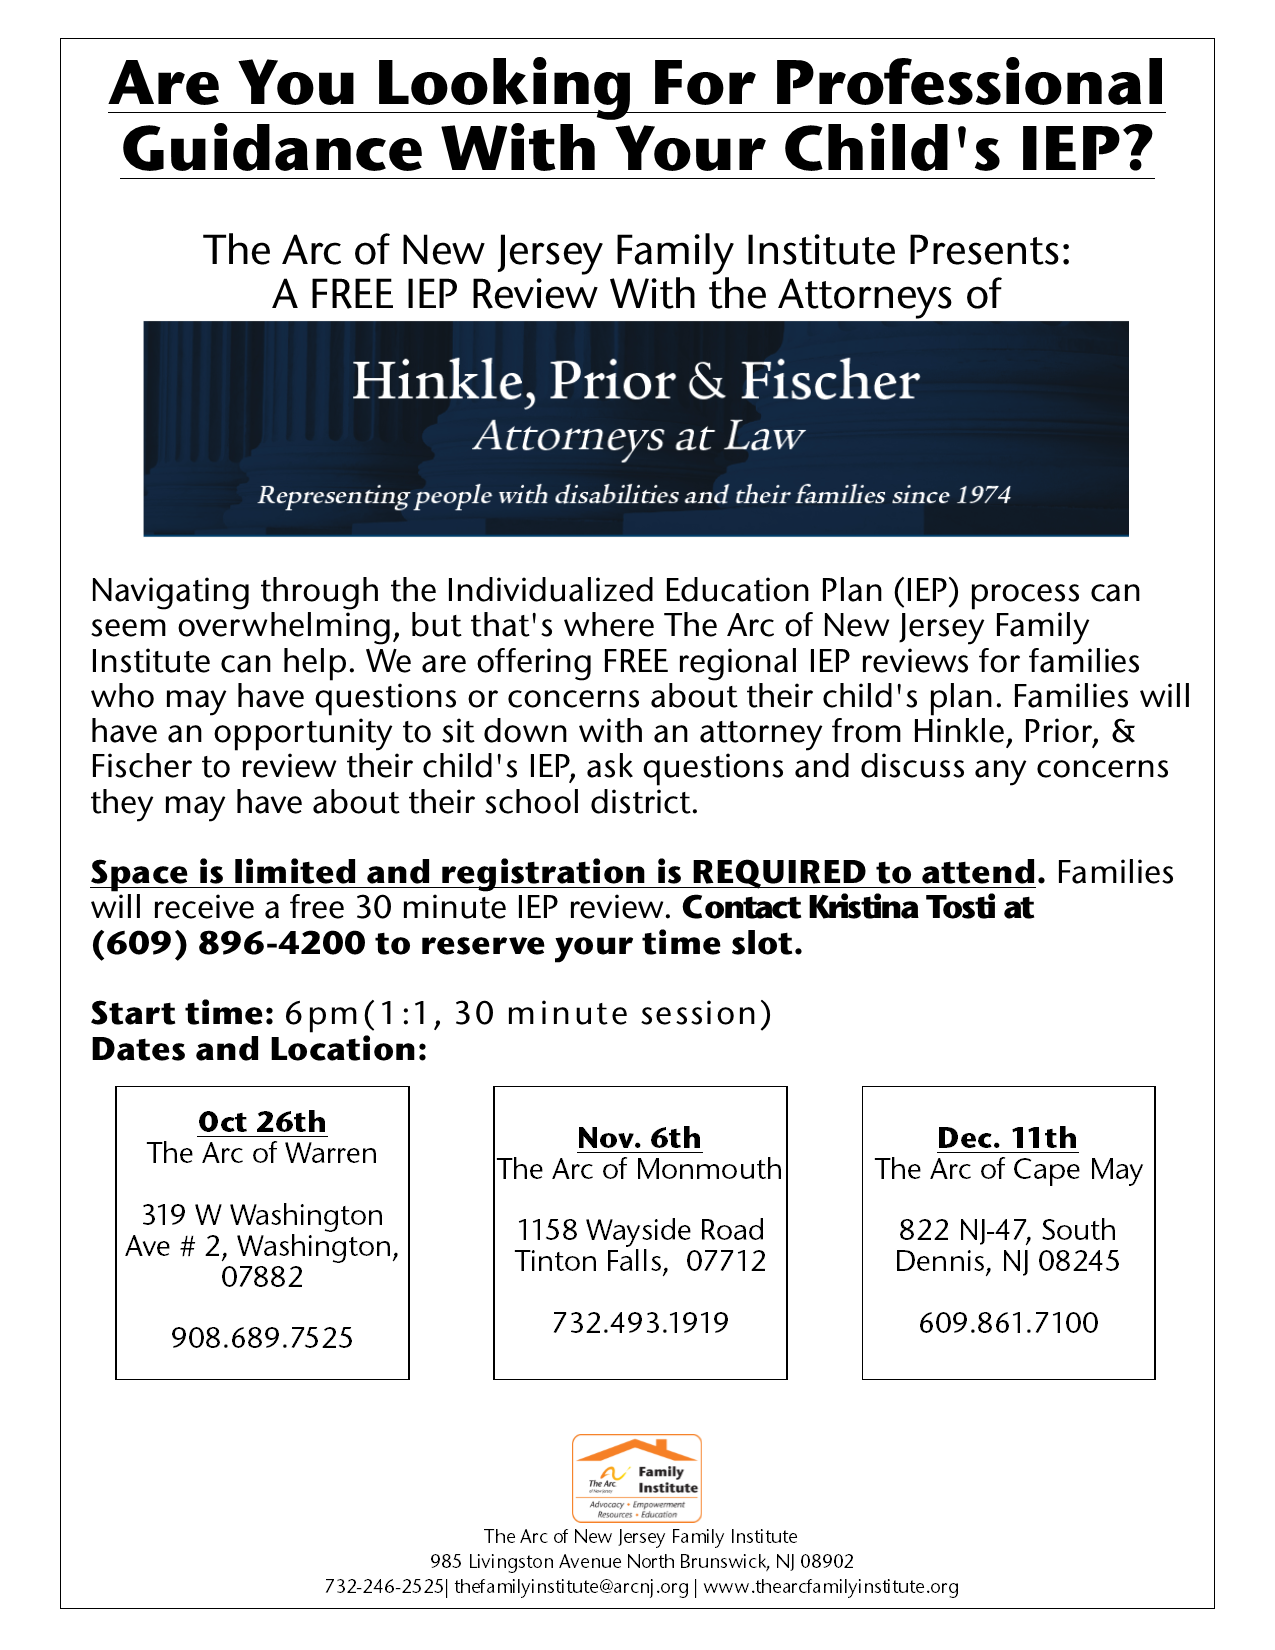 Are You Looking For Professional Guidance With Your Child's IEP?